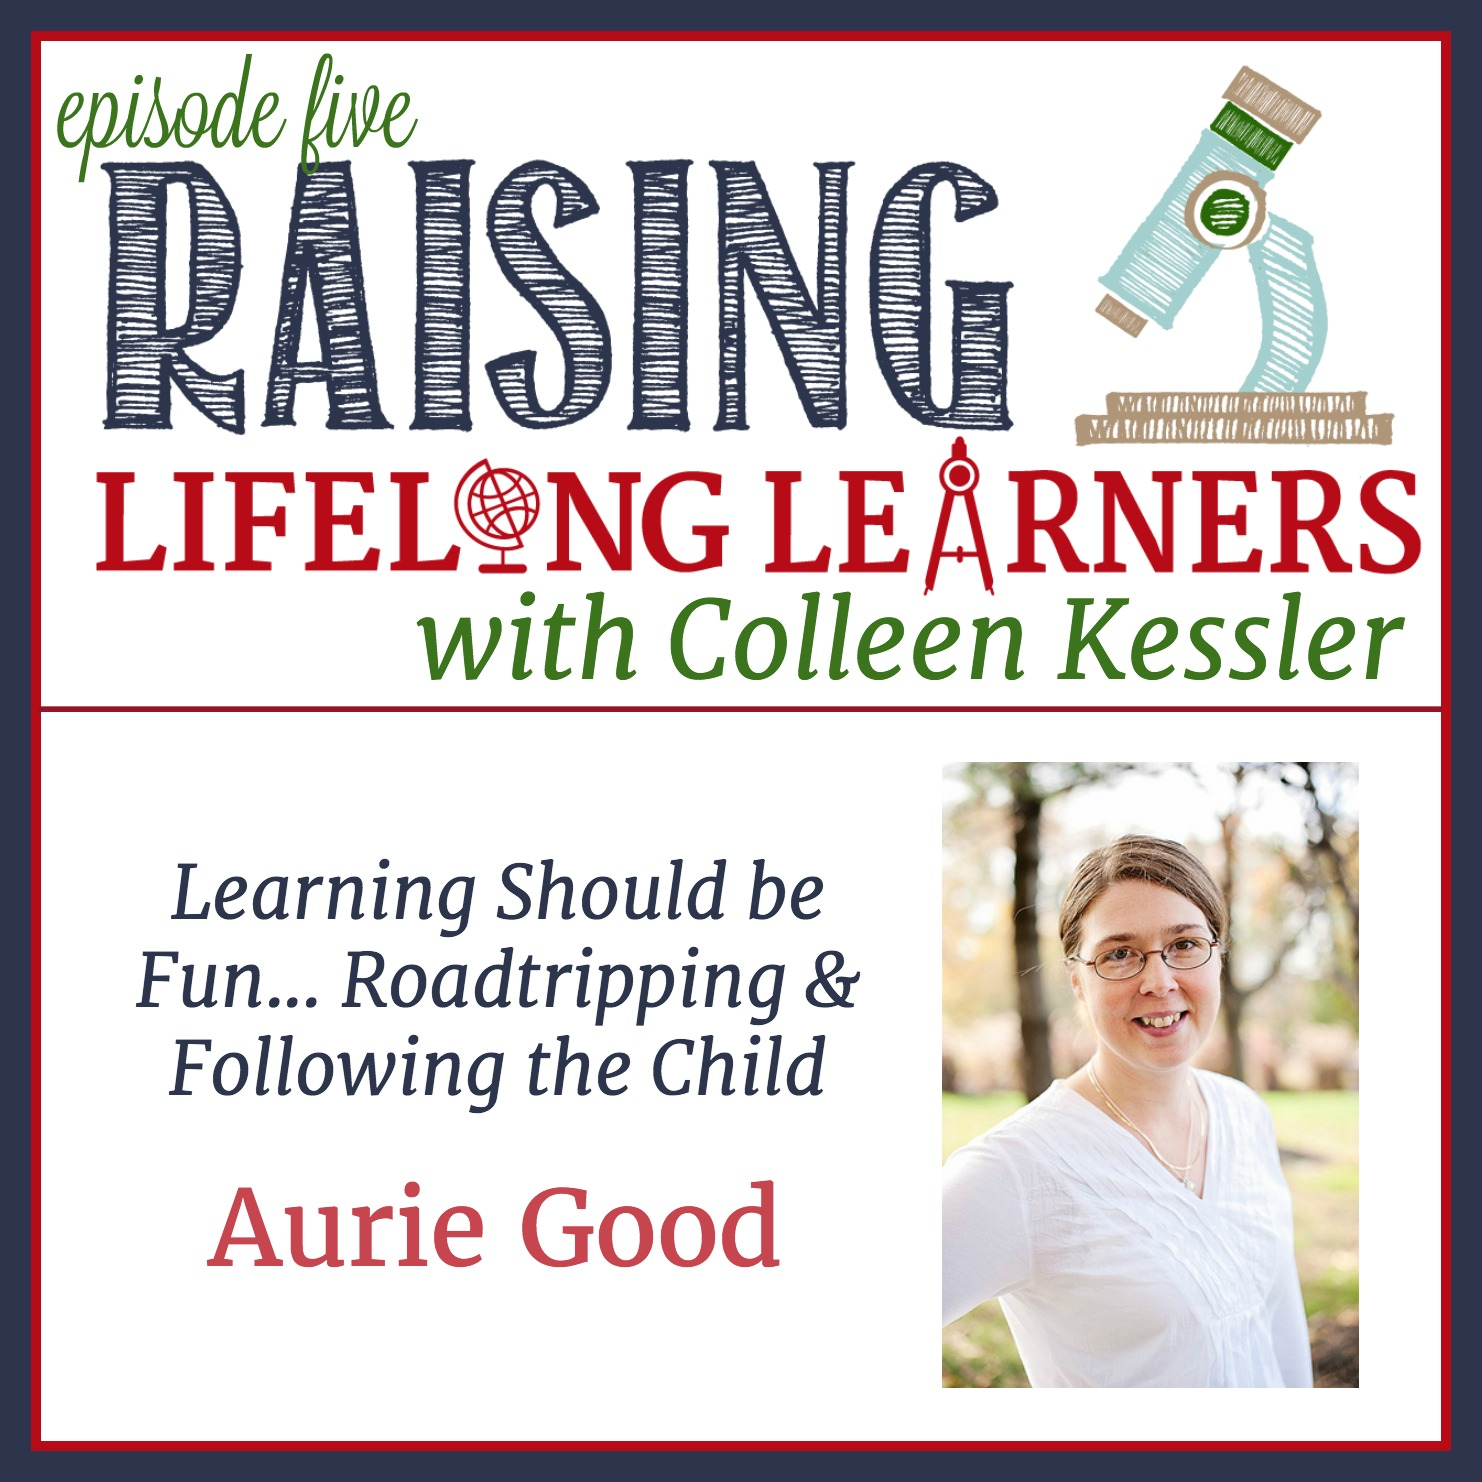 RLL Episode Five Aurie Good - Learning Should Be Fun - Roadtripping and Following the Child